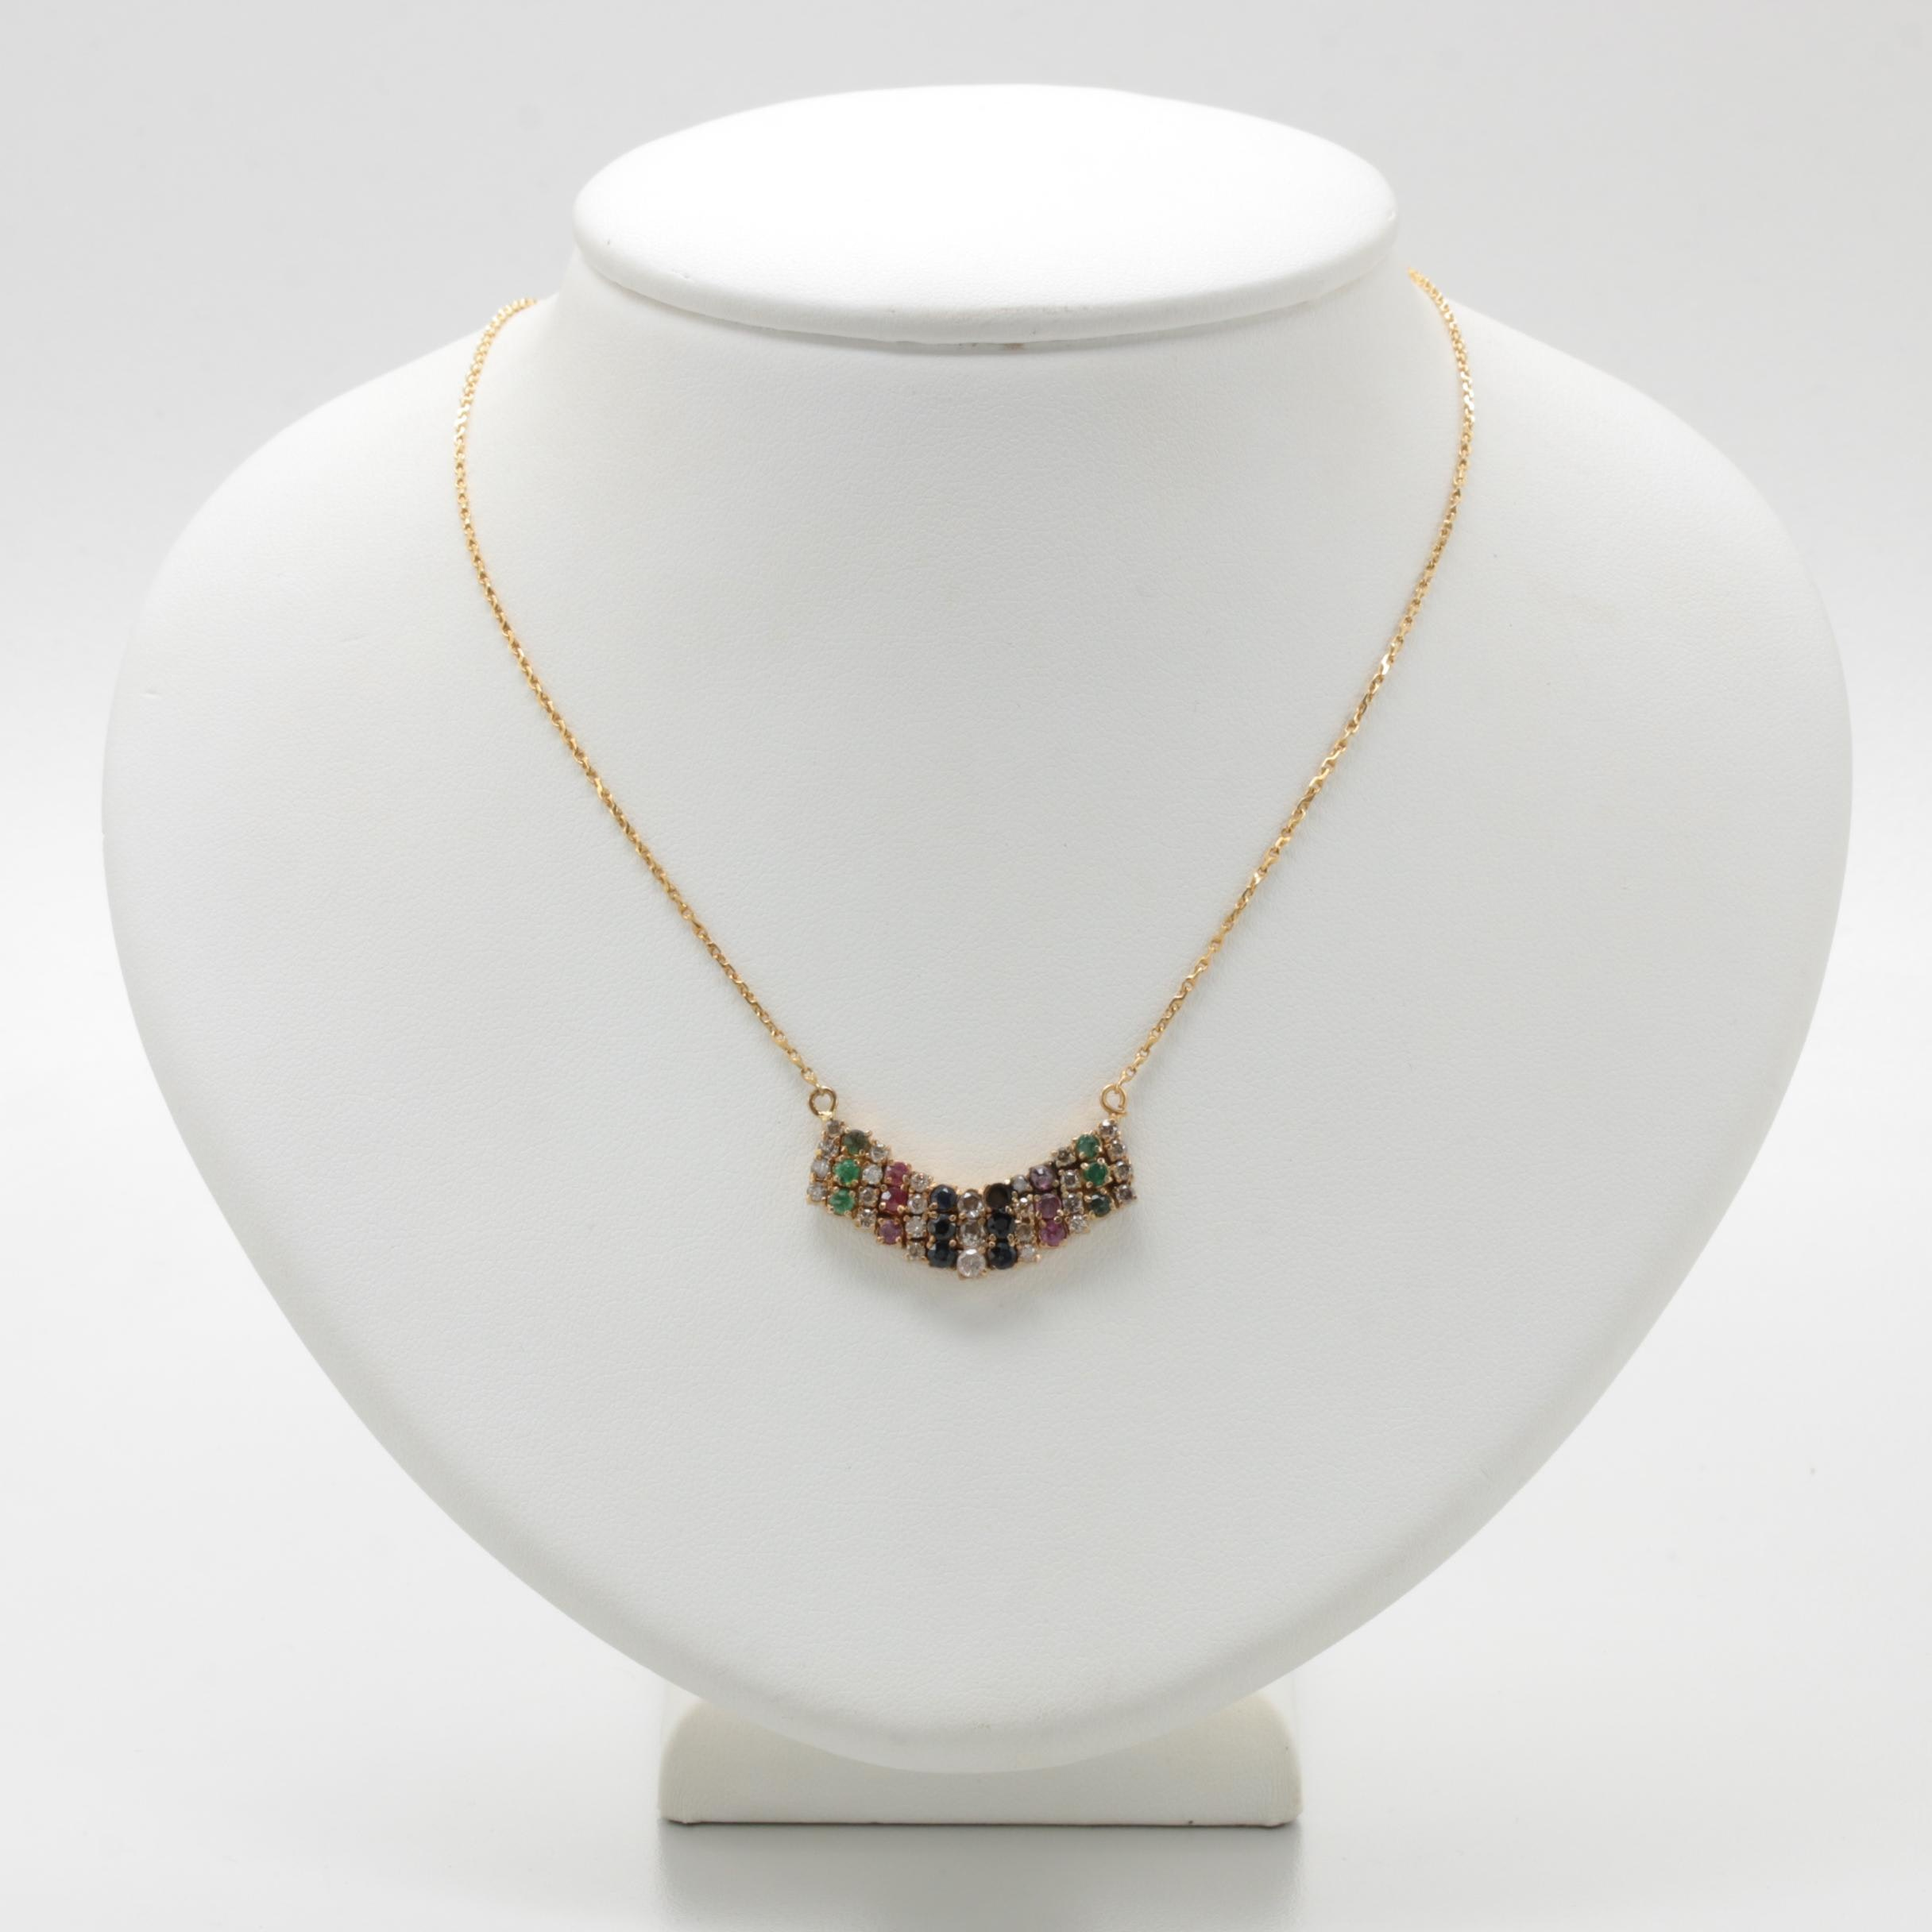 10K and 14K Yellow Gold Diamond, Emerald, Sapphire and Ruby Necklace